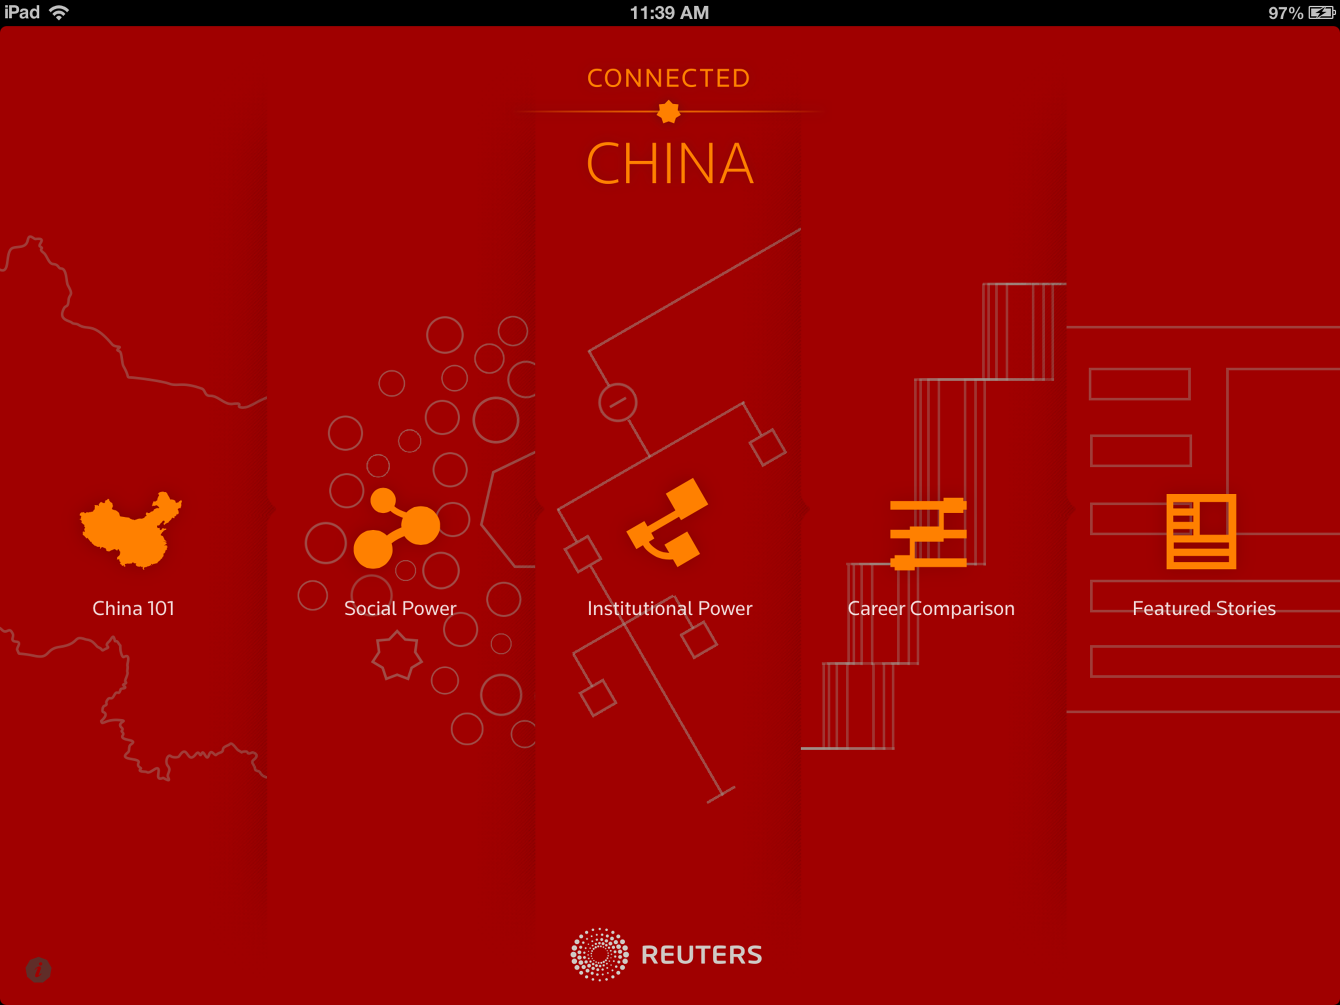 Connected China A website for Thomson Reuters that